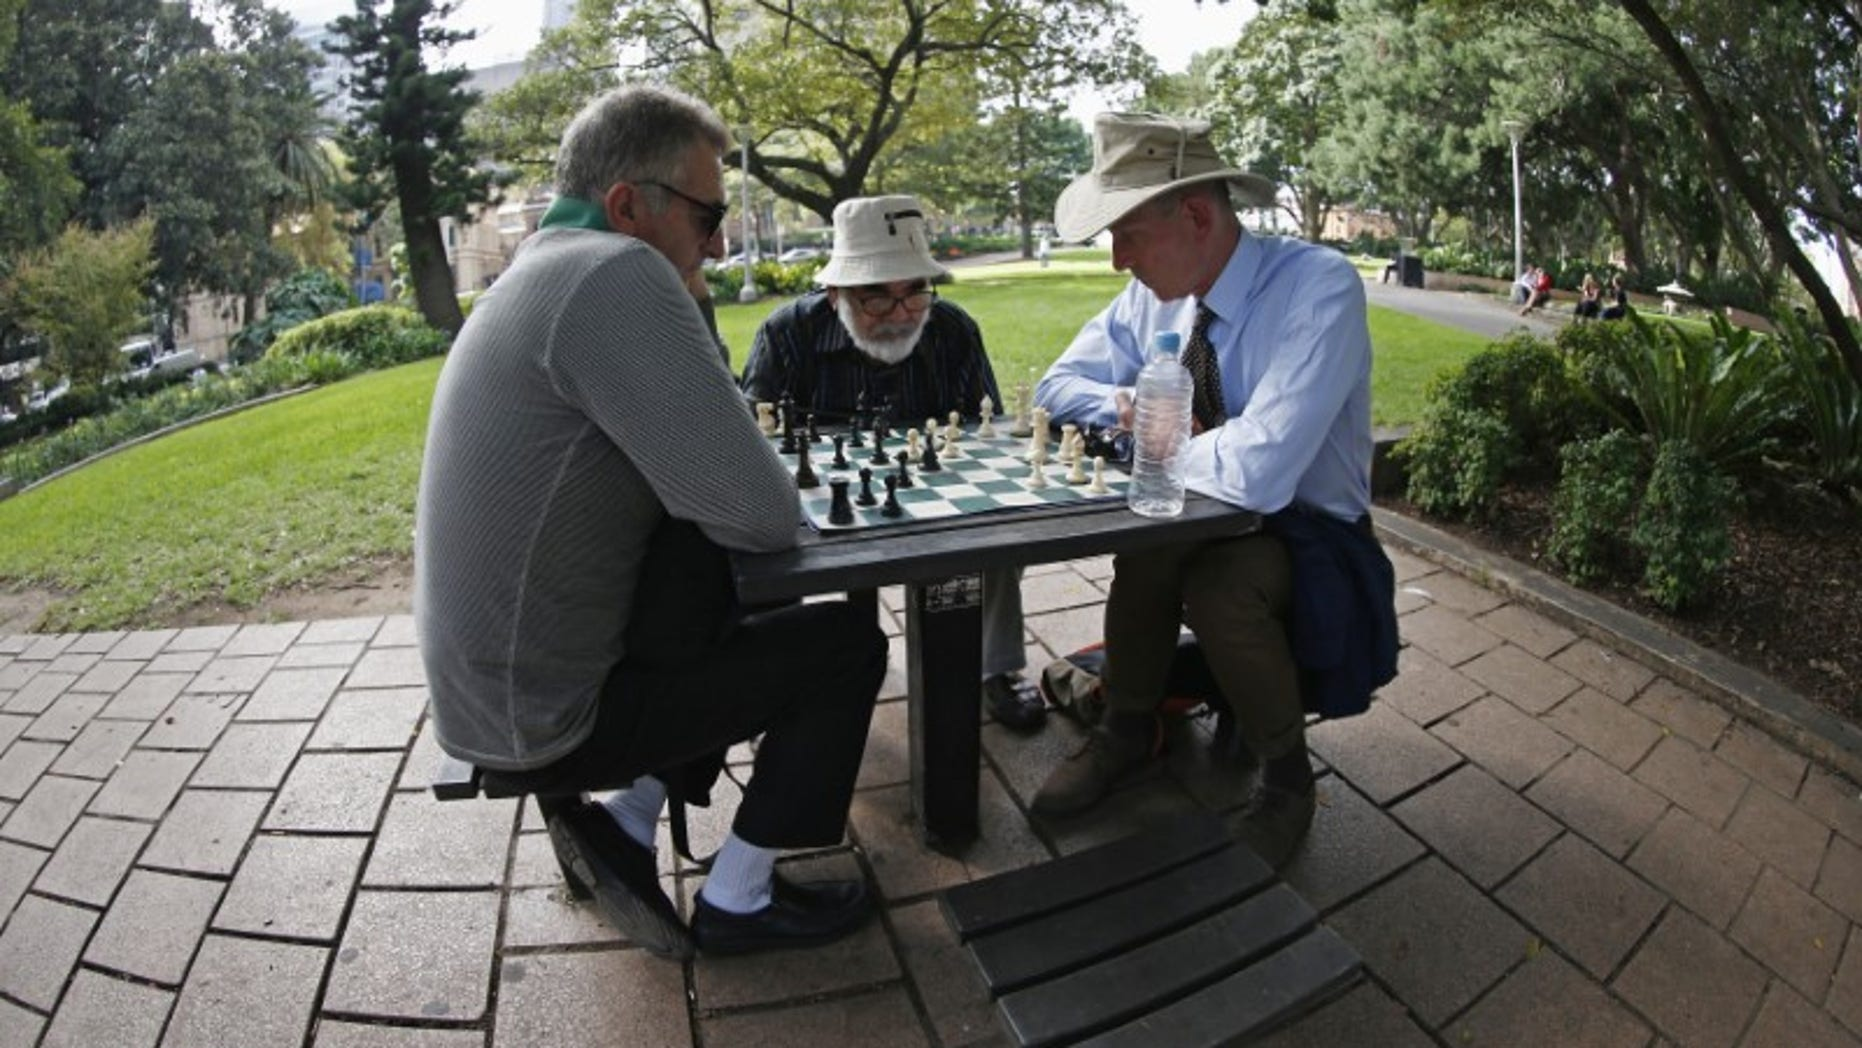 Men play chess at Hyde Park in central Sydney